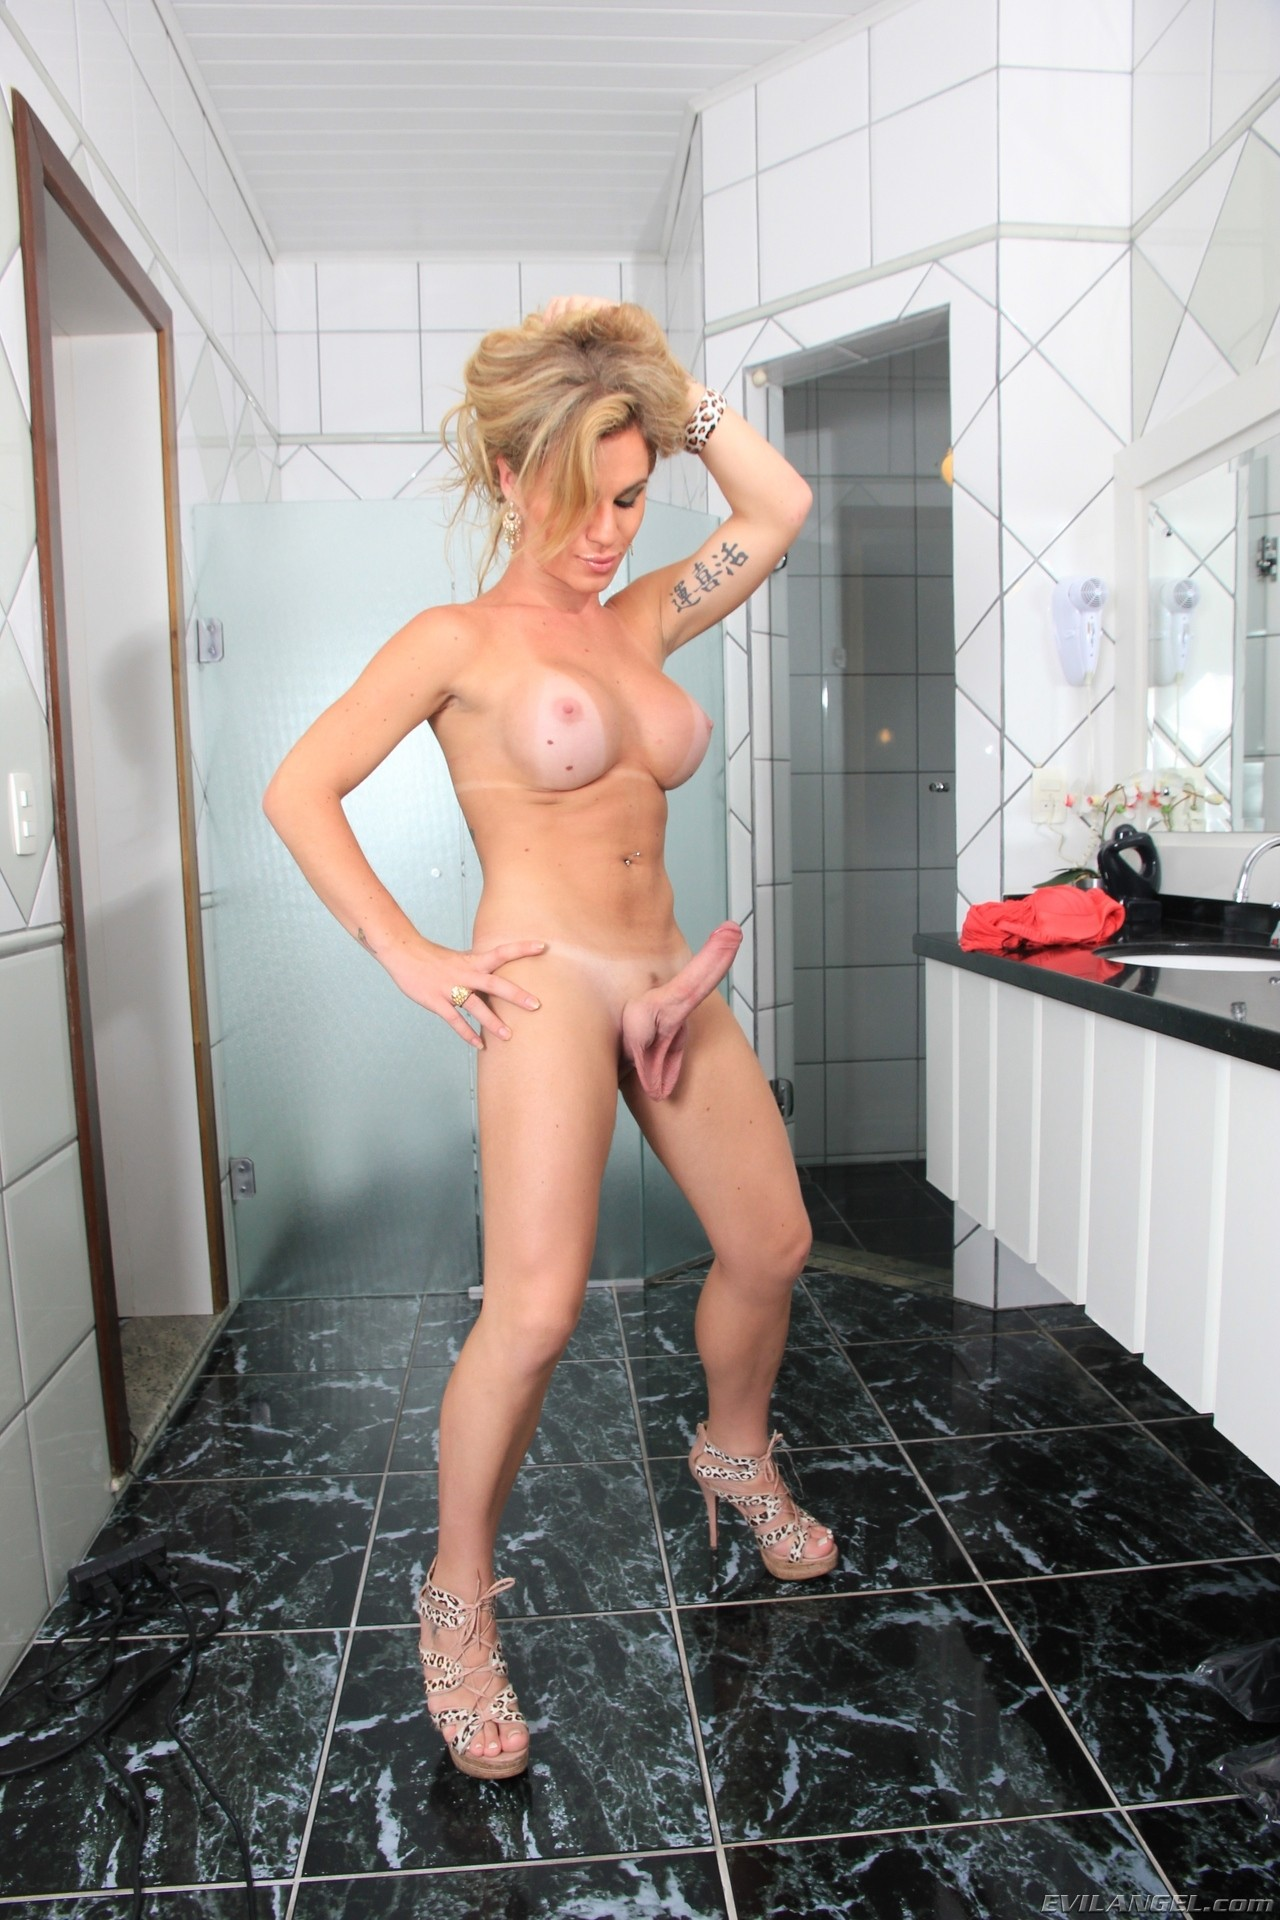 Adult archive Free tranny cocks